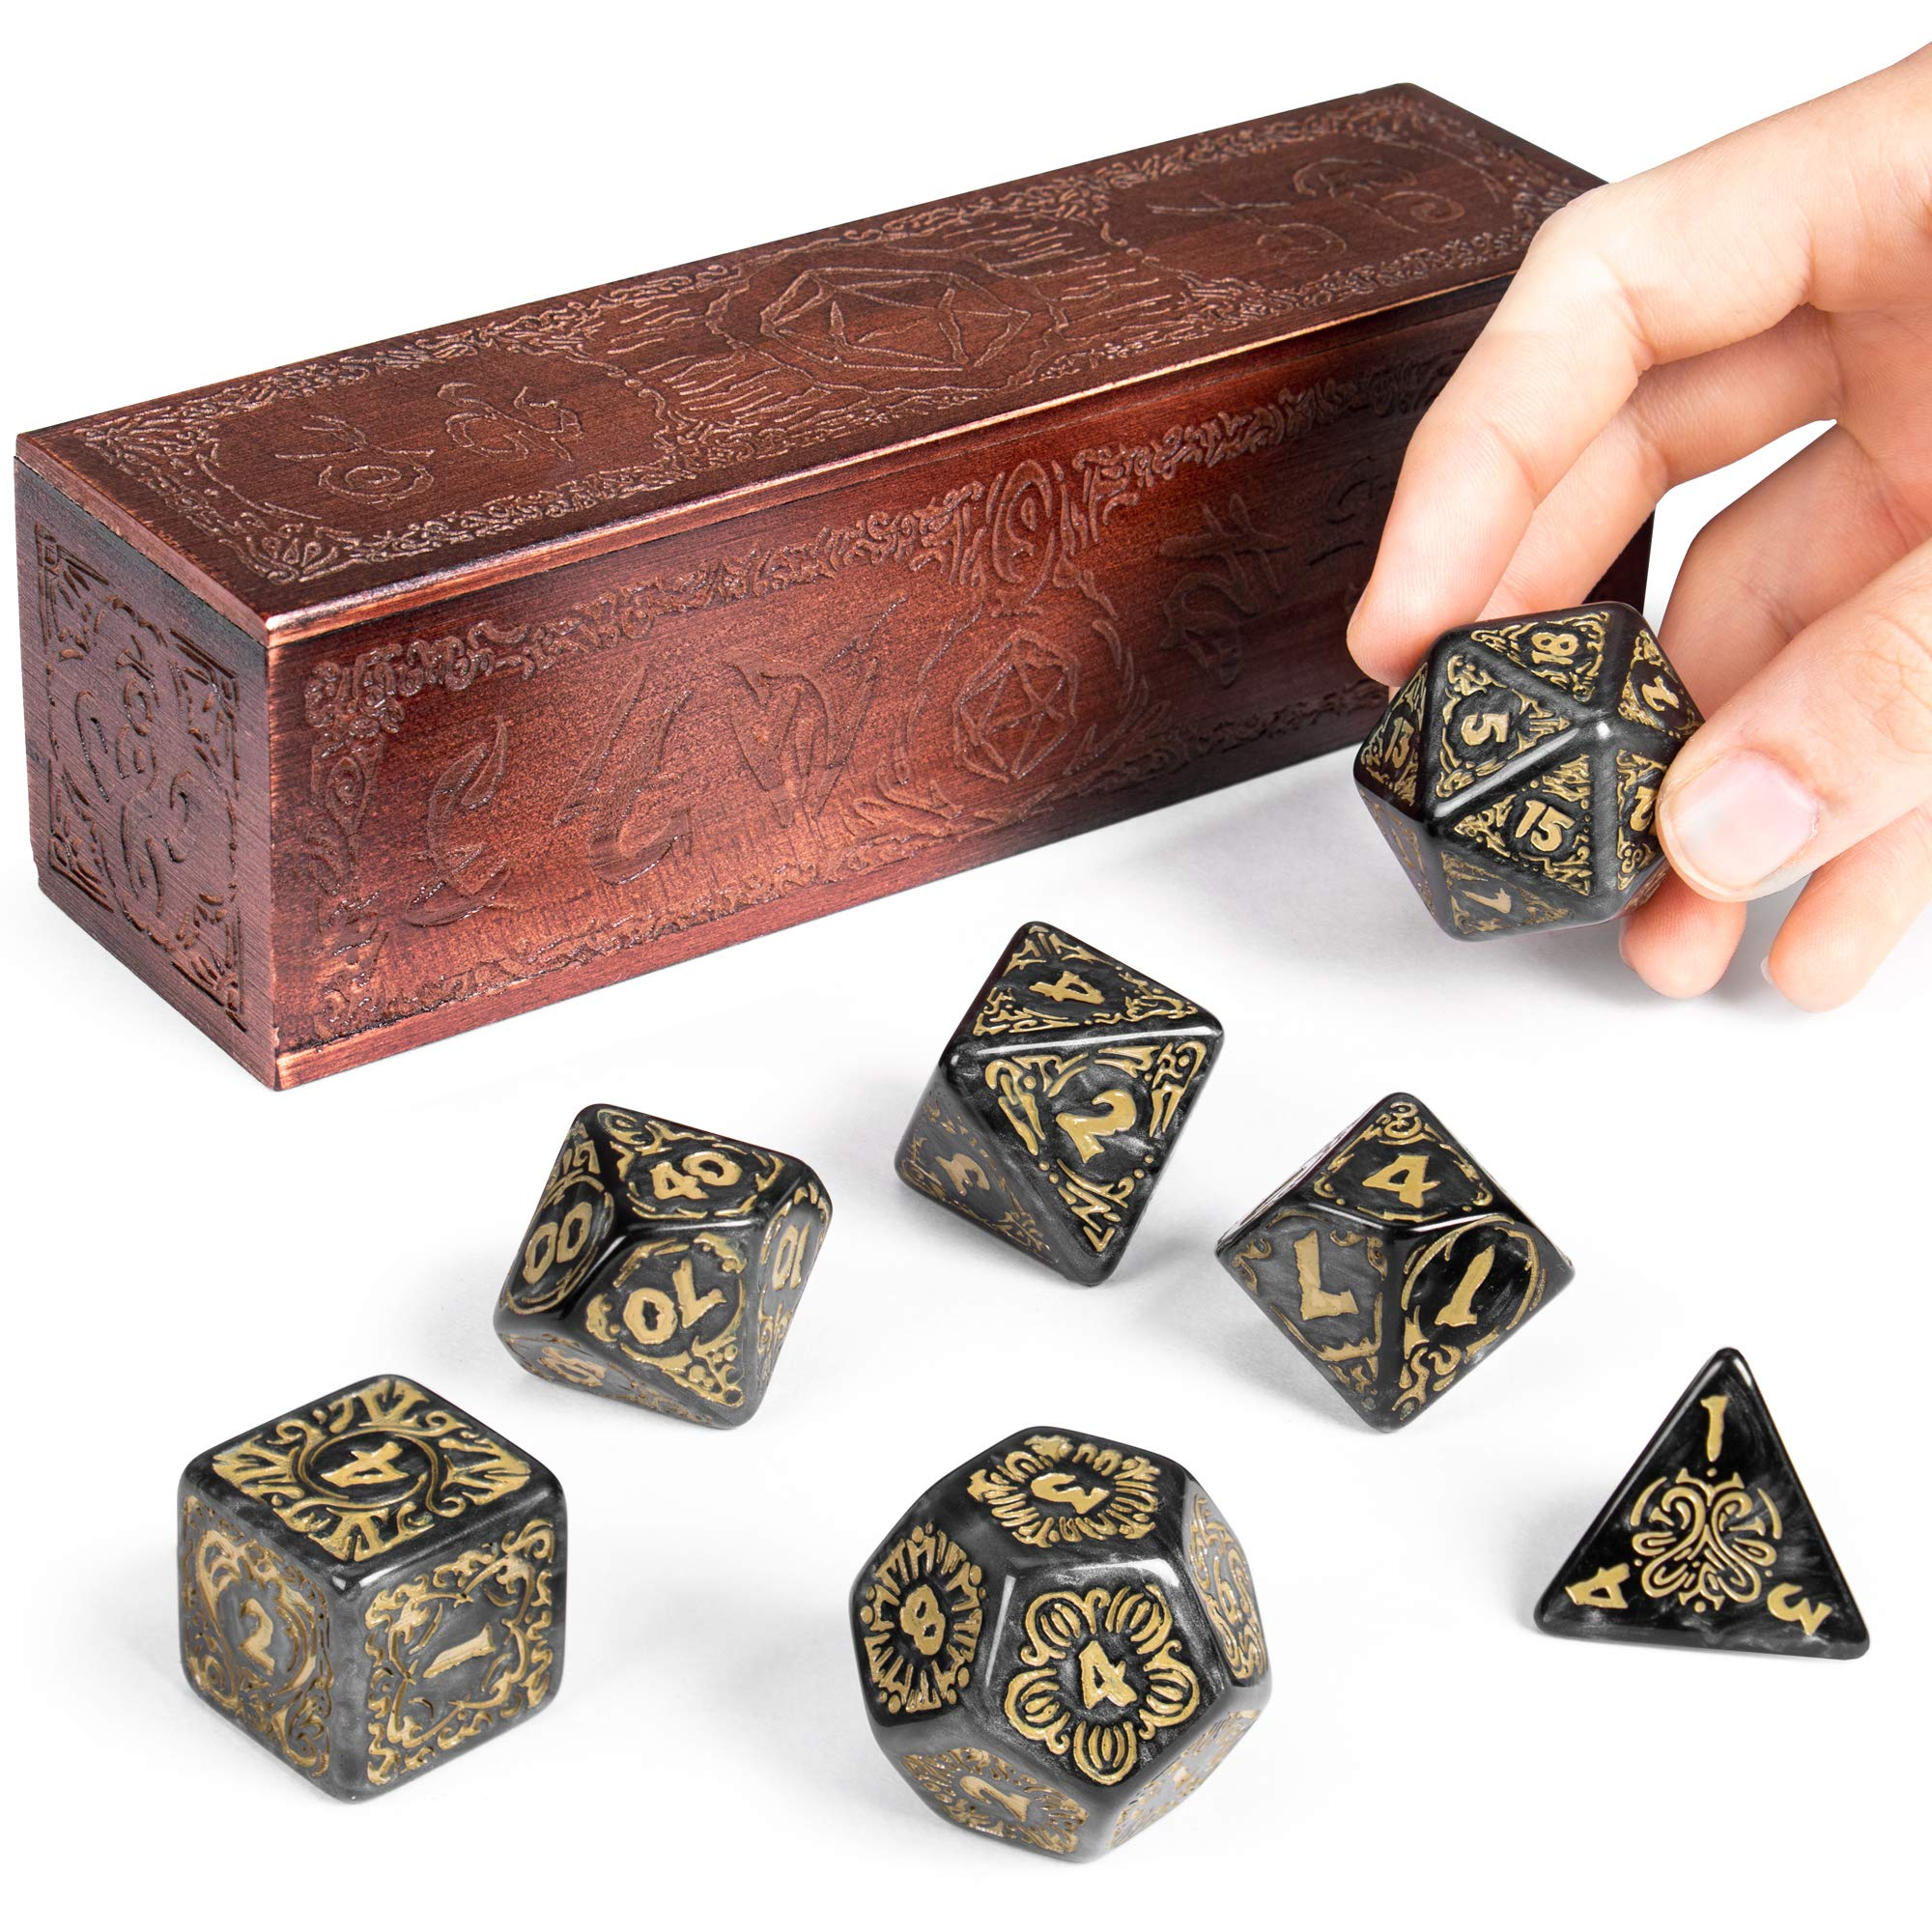 Titan Dice: Nyx | 25mm Giant Polyhedral Dice 7-Piece Set & Engraved Wooden Display Box | Smoke Color with Gold Numbers | Tabletop Roleplaying Fantasy RPG Gaming Novelty Accessories by Wiz Dice